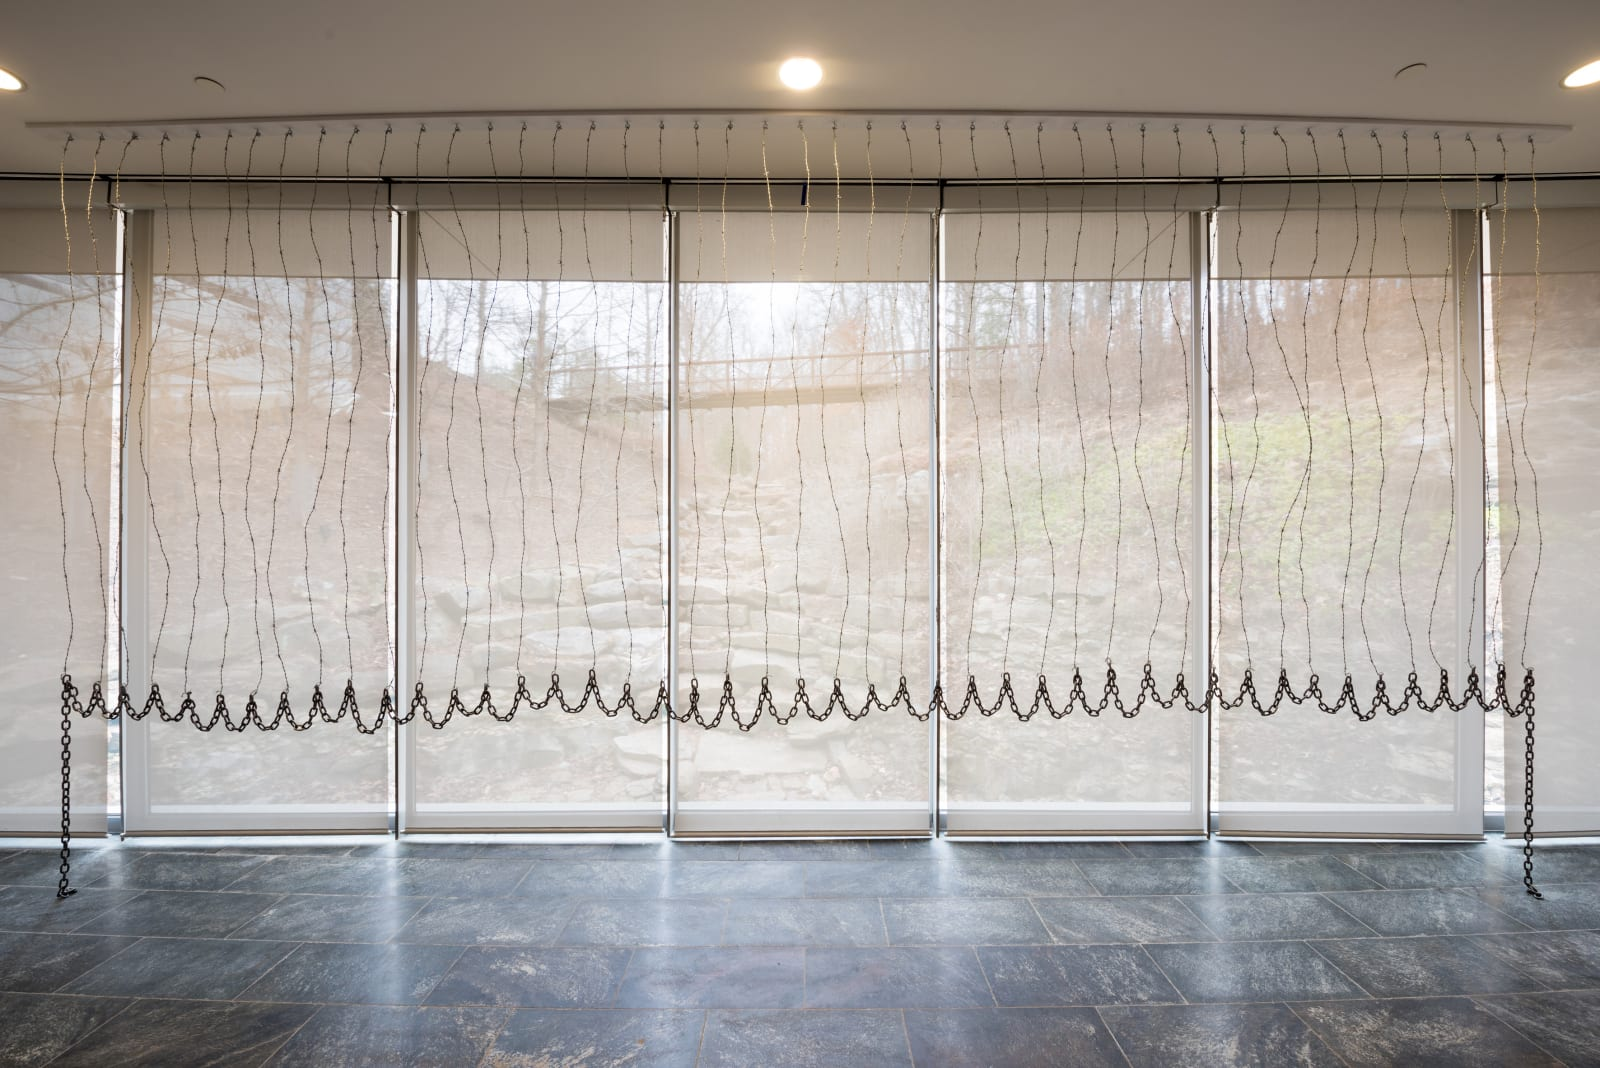 <p>Installation view: 'Soul of a Nation: Art in the Age of Black Power', Crystal Bridges Museum of American Art, Bentonville, Arkansas (2018)</p>